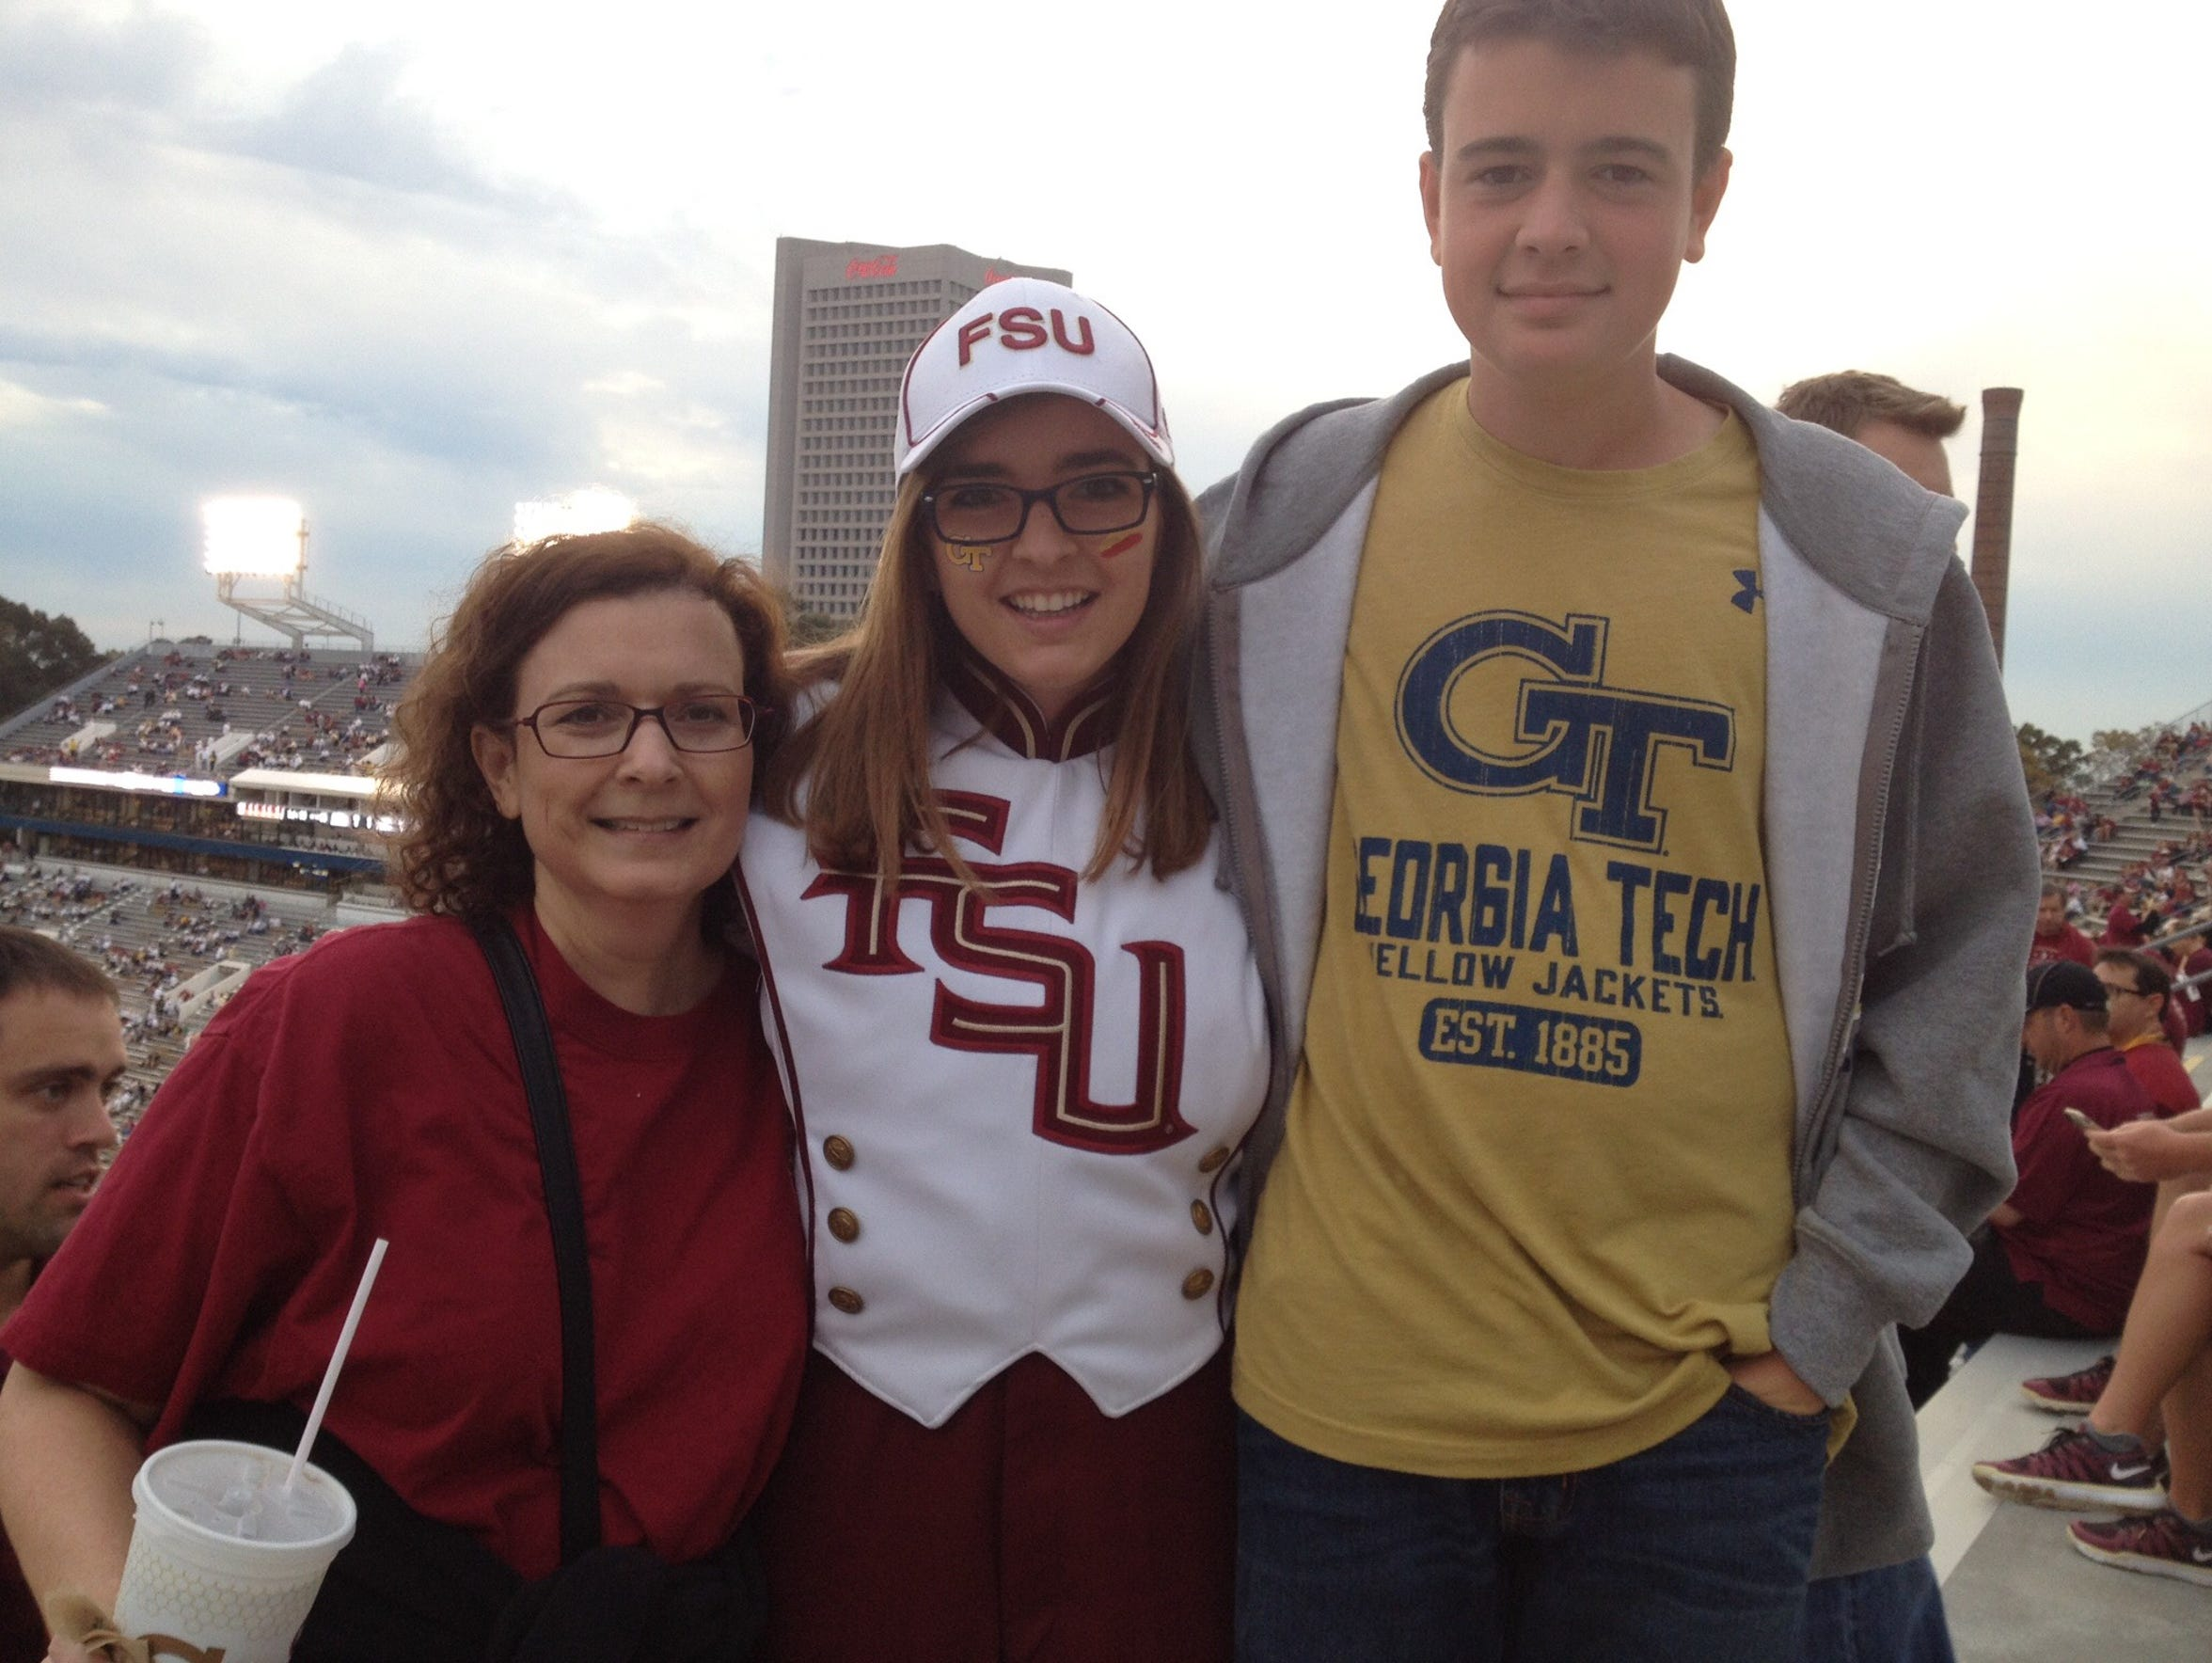 My mom and brother Scott joined me at the FSU vs. Georgia